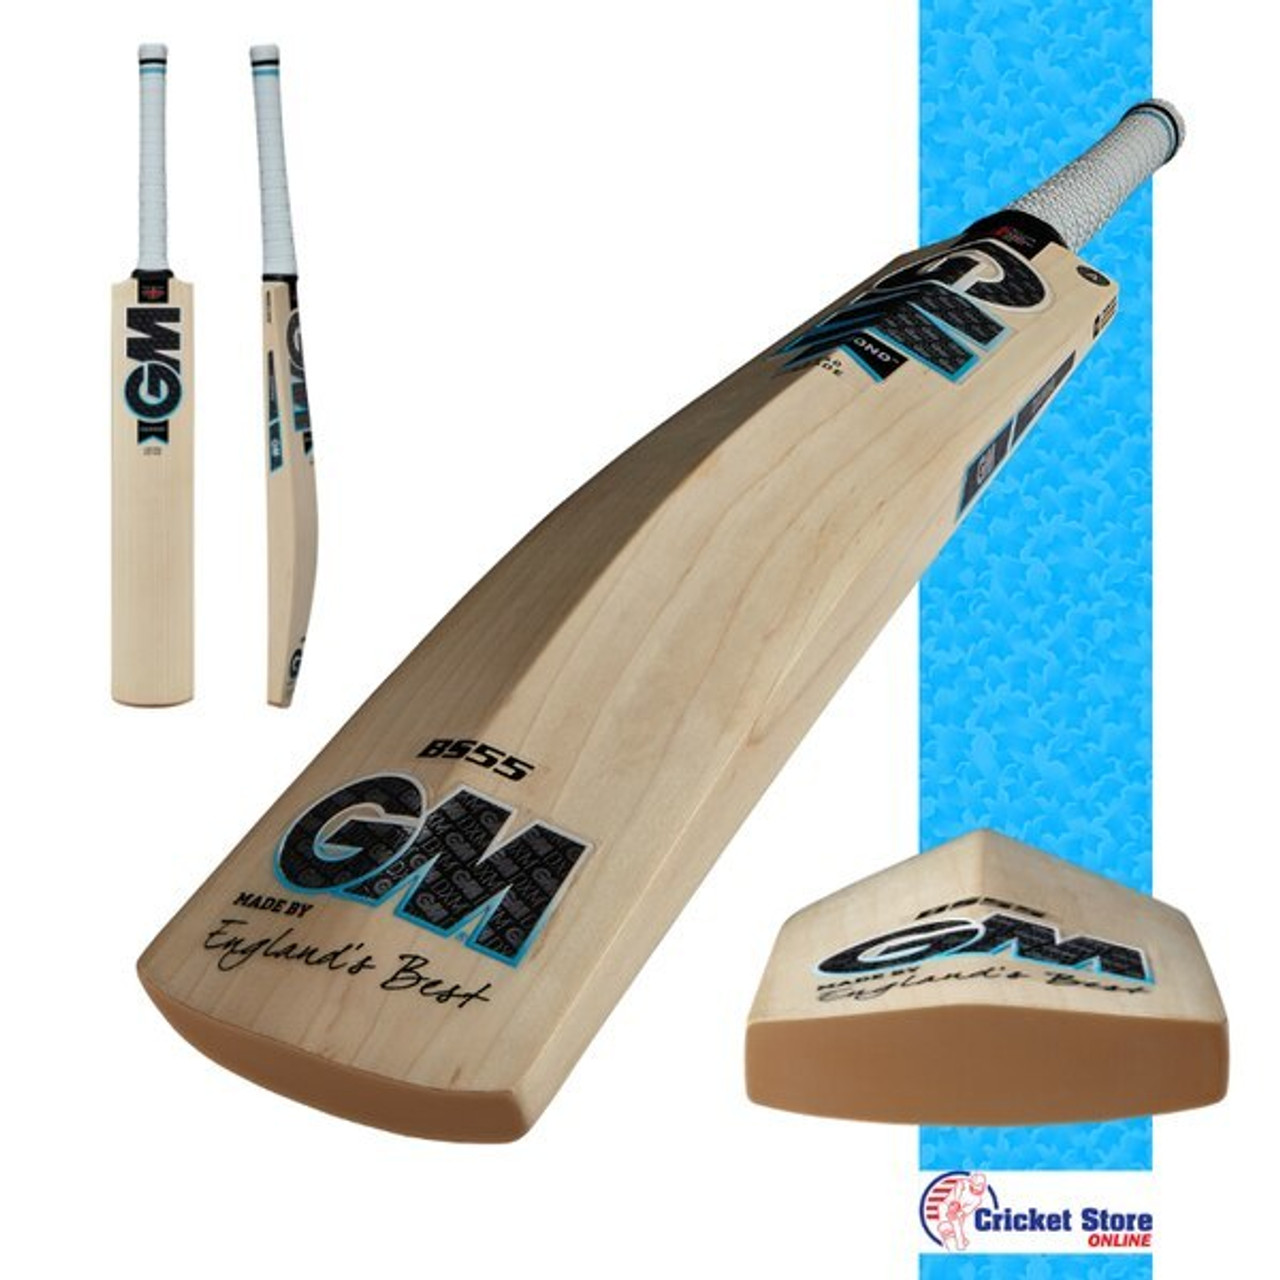 GM Diamond Cricket Bats 2021